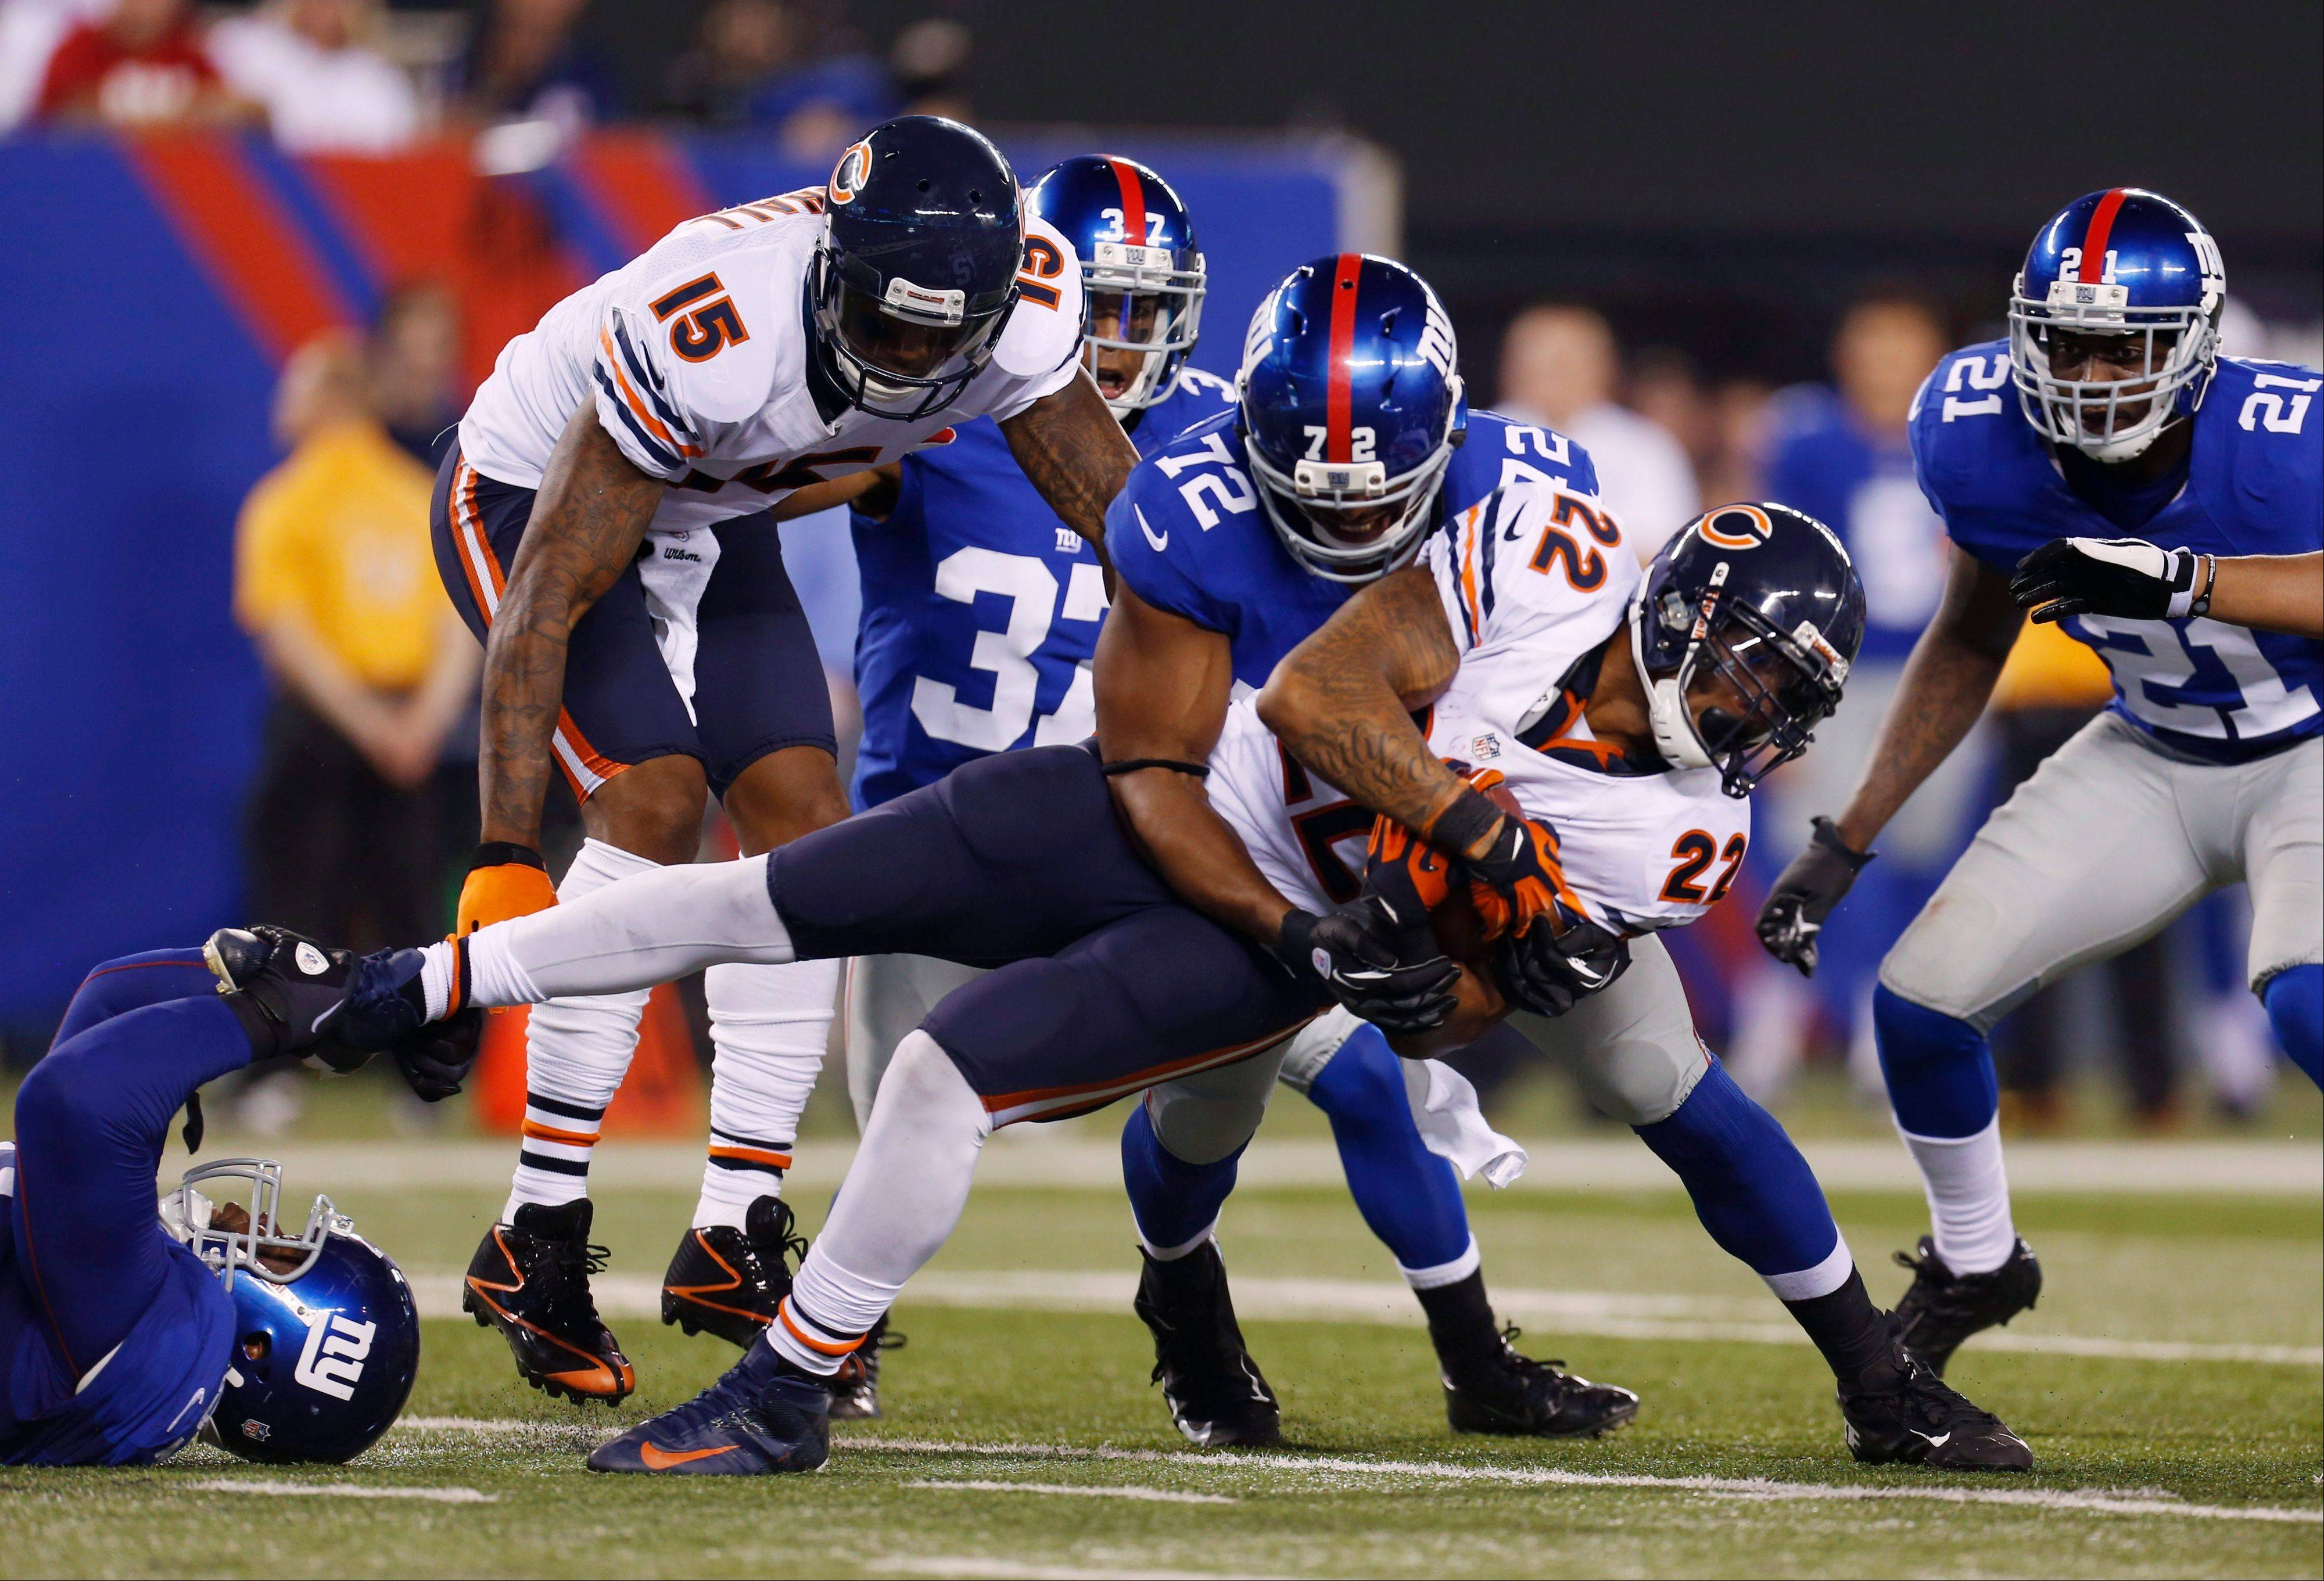 Matt Forte is tackled by New York Giants' Osi Umenyiora (72) and another Giant, left, during the first half Friday in East Rutherford, N.J.